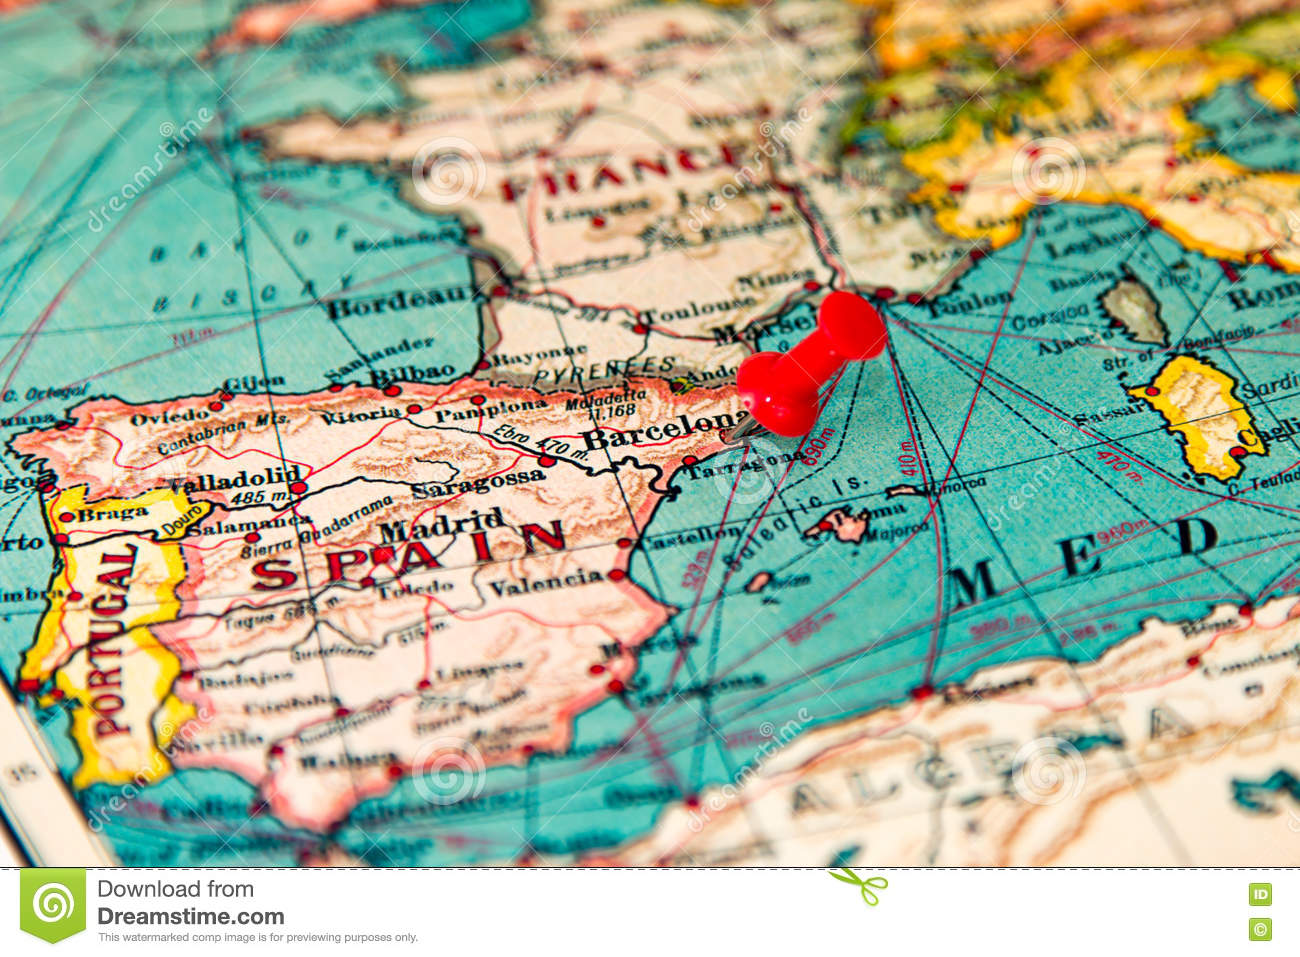 Barcelona Spain Pinned On Vintage Map Of Europe Stock Photo Image Of Cartography Exploration 78865180